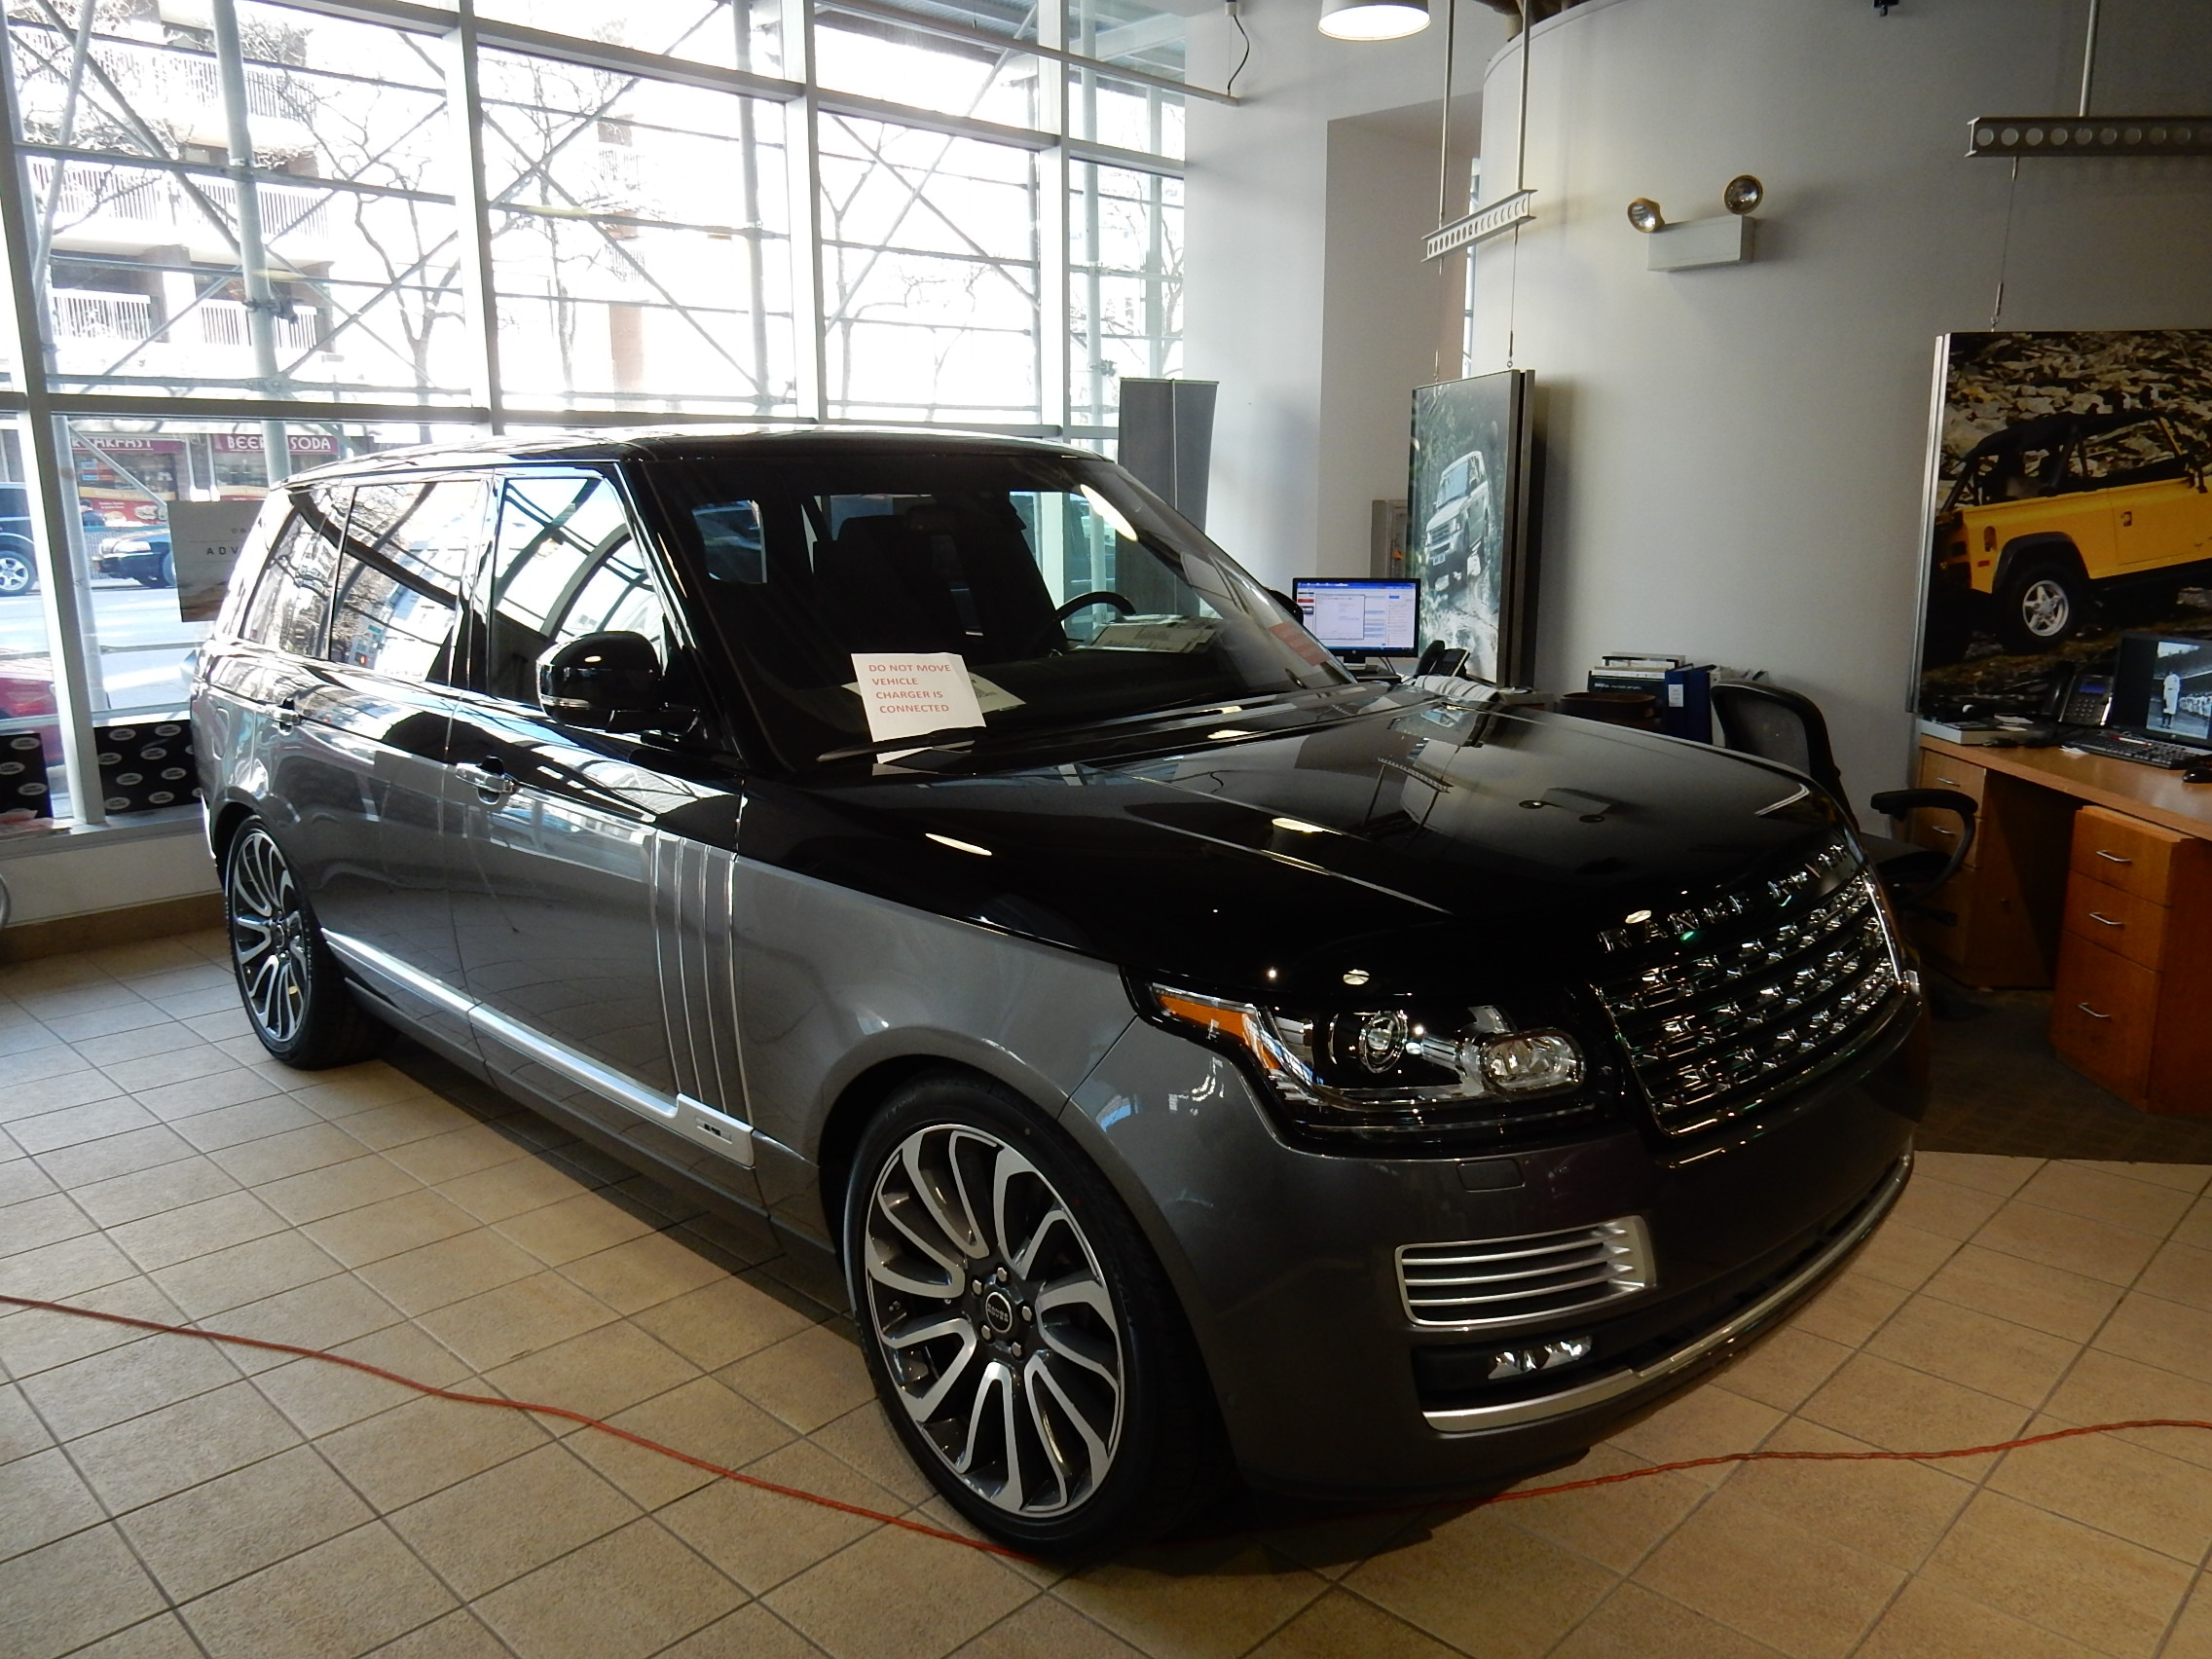 Land rover manhattan vehicles for sale in new york ny 10019 for The range wallpaper sale